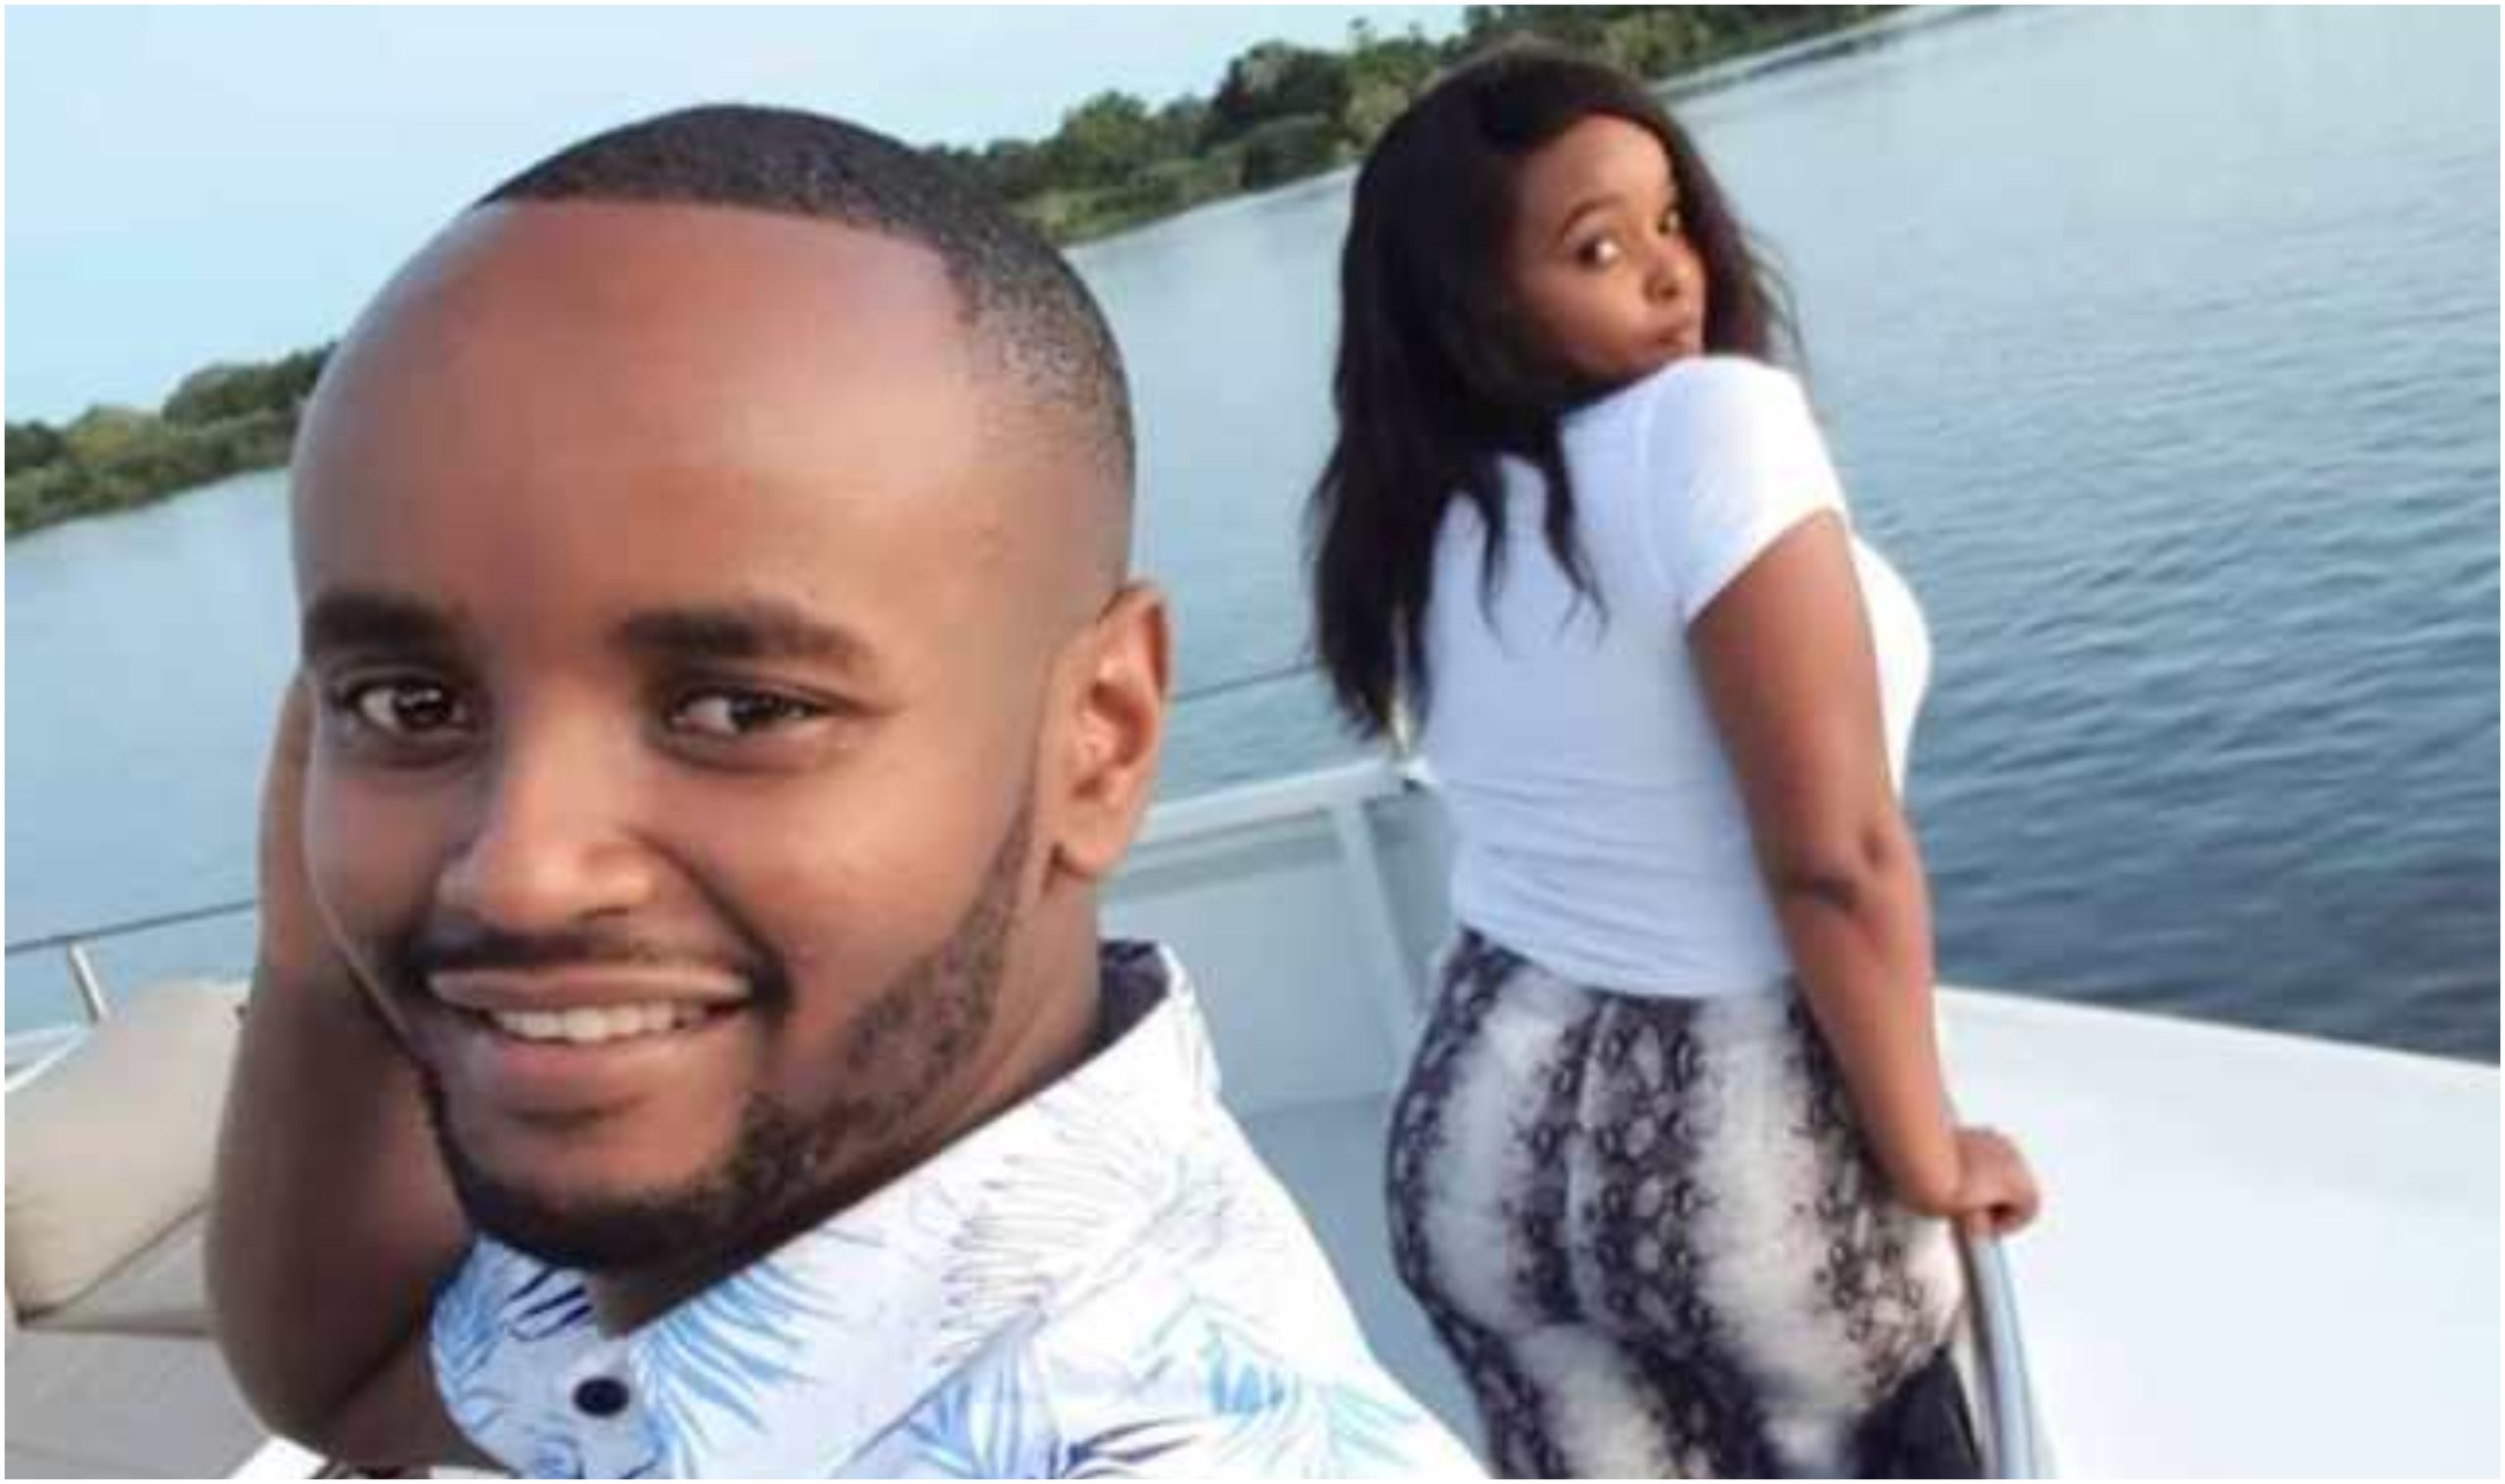 Wild reactions after Kabi WaJesus caught on camera wiggling waist with Arab babe during Dubai baecation (Video)